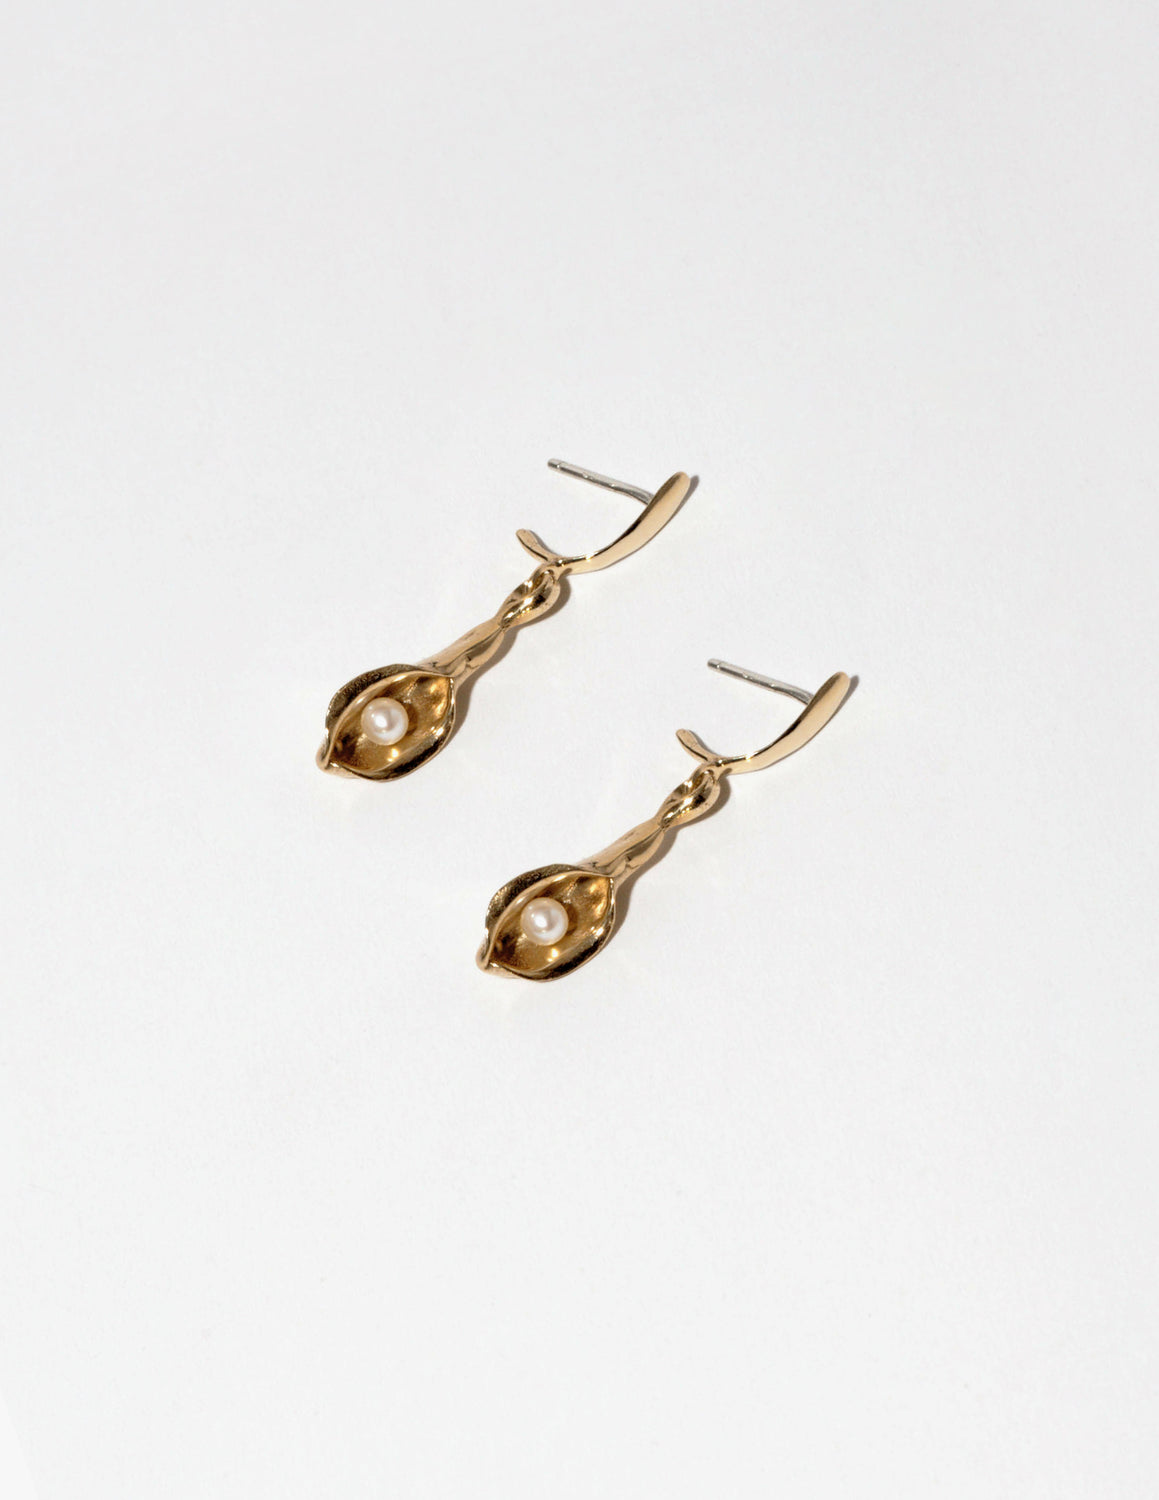 Petite Vida Earrings